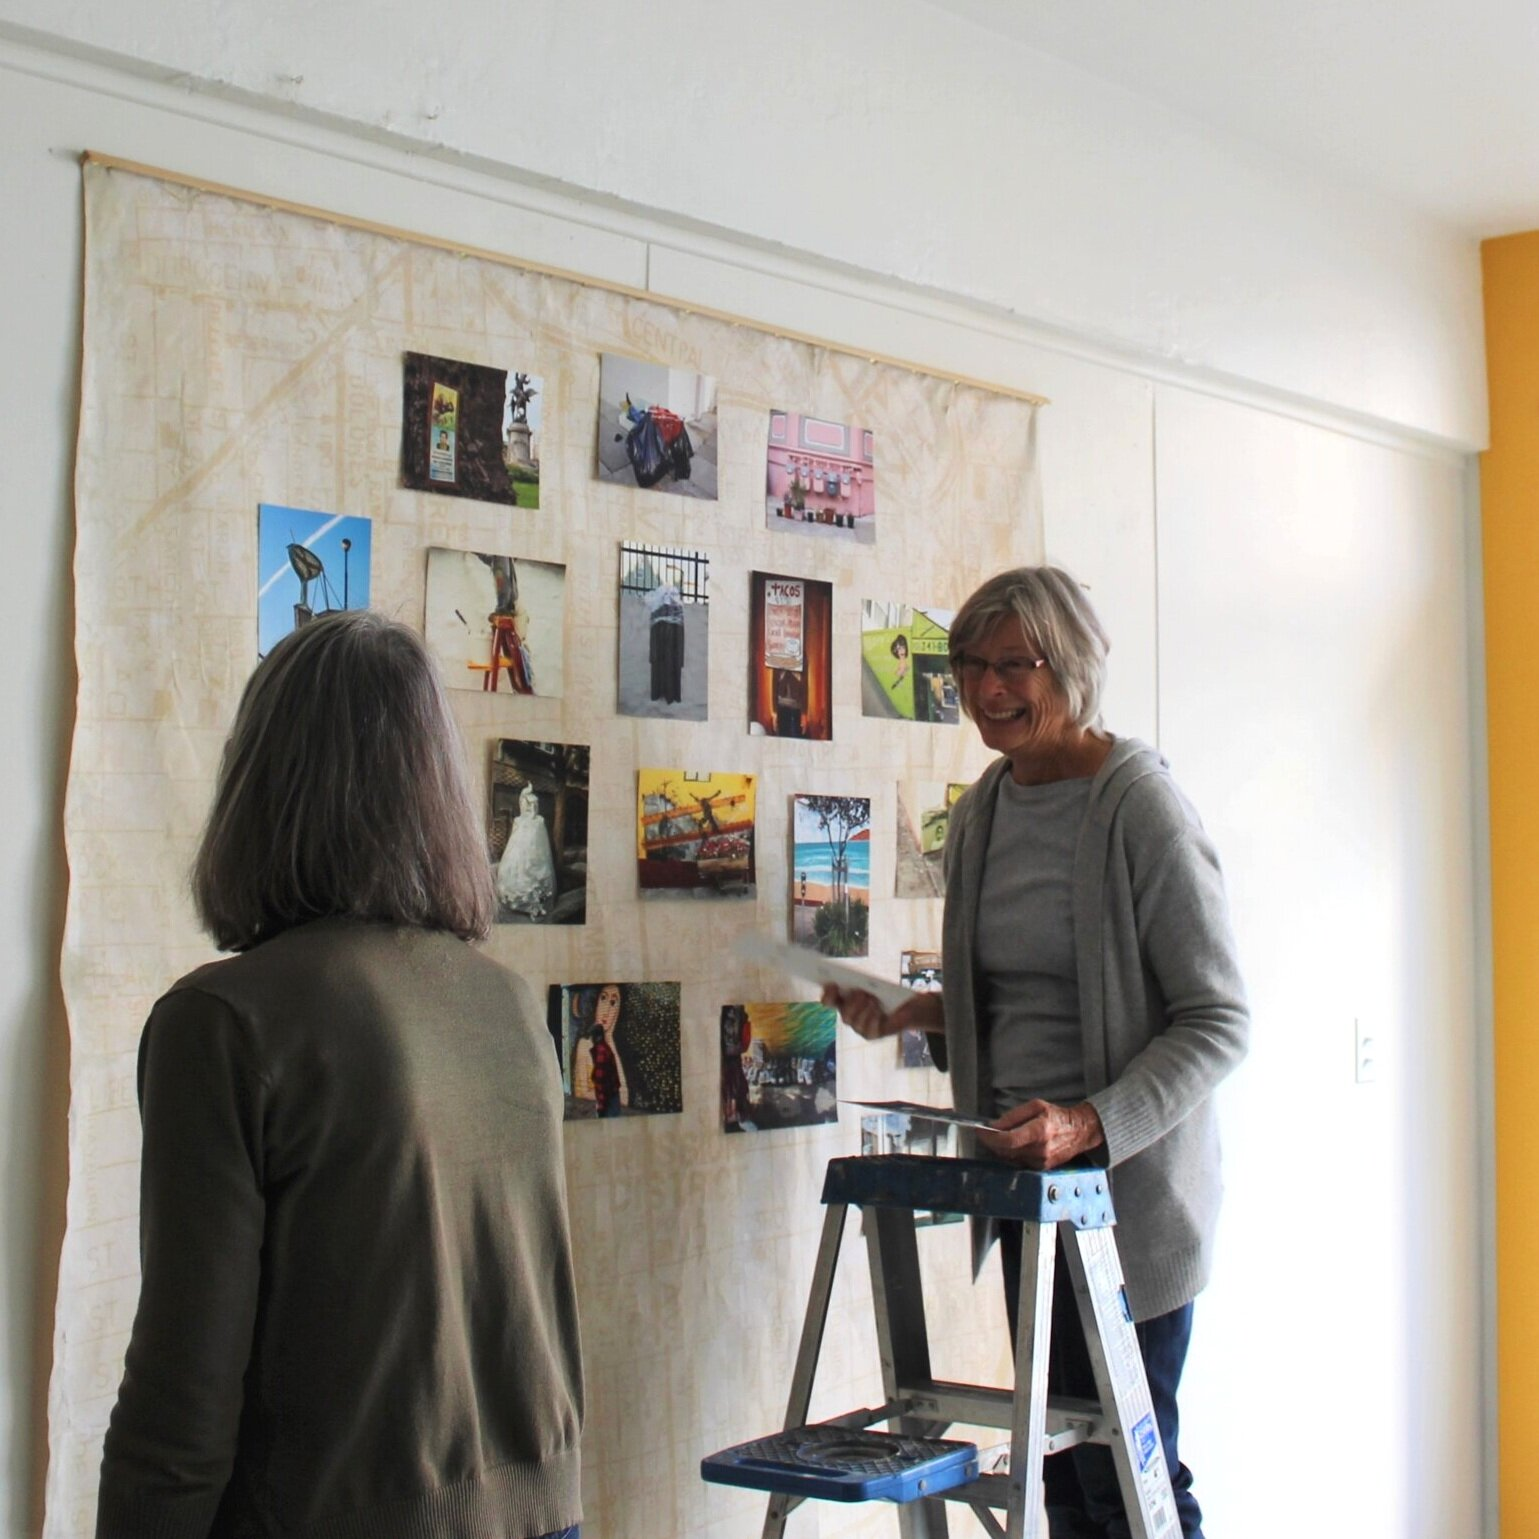 Gallery Takeover - Gallery Takeovers are a series of exhibitions that display the resulting works created through our art-making programs at RT and partner communities.These interactive exhibitions serve as a platform for every participant, regardless of their age or level of abilities, to create, share, and connect through making, viewing and discussing art.Check back for more information about the upcoming show.